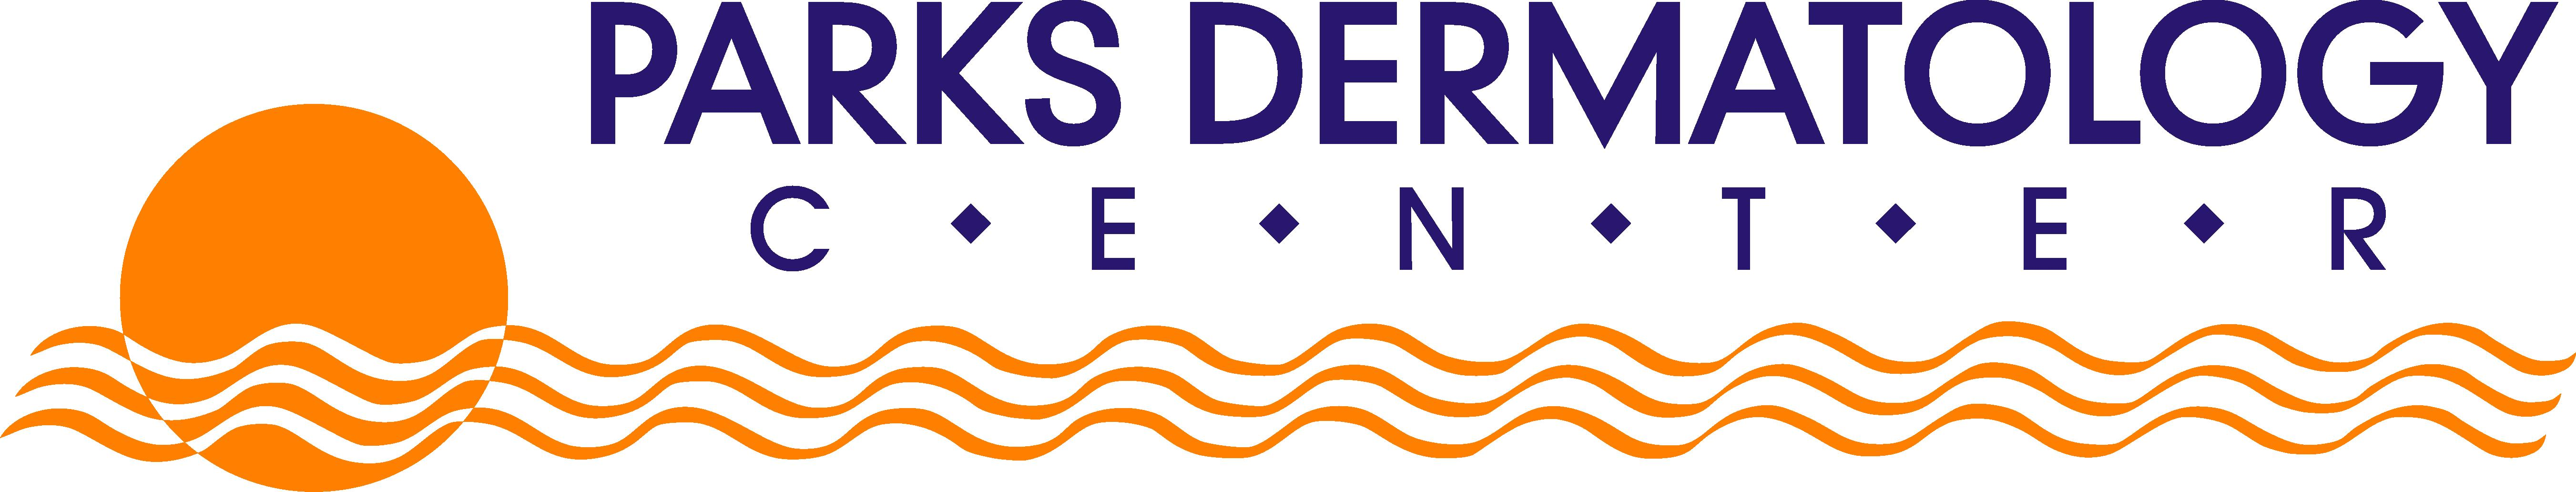 Parks Dermatology Center Logo